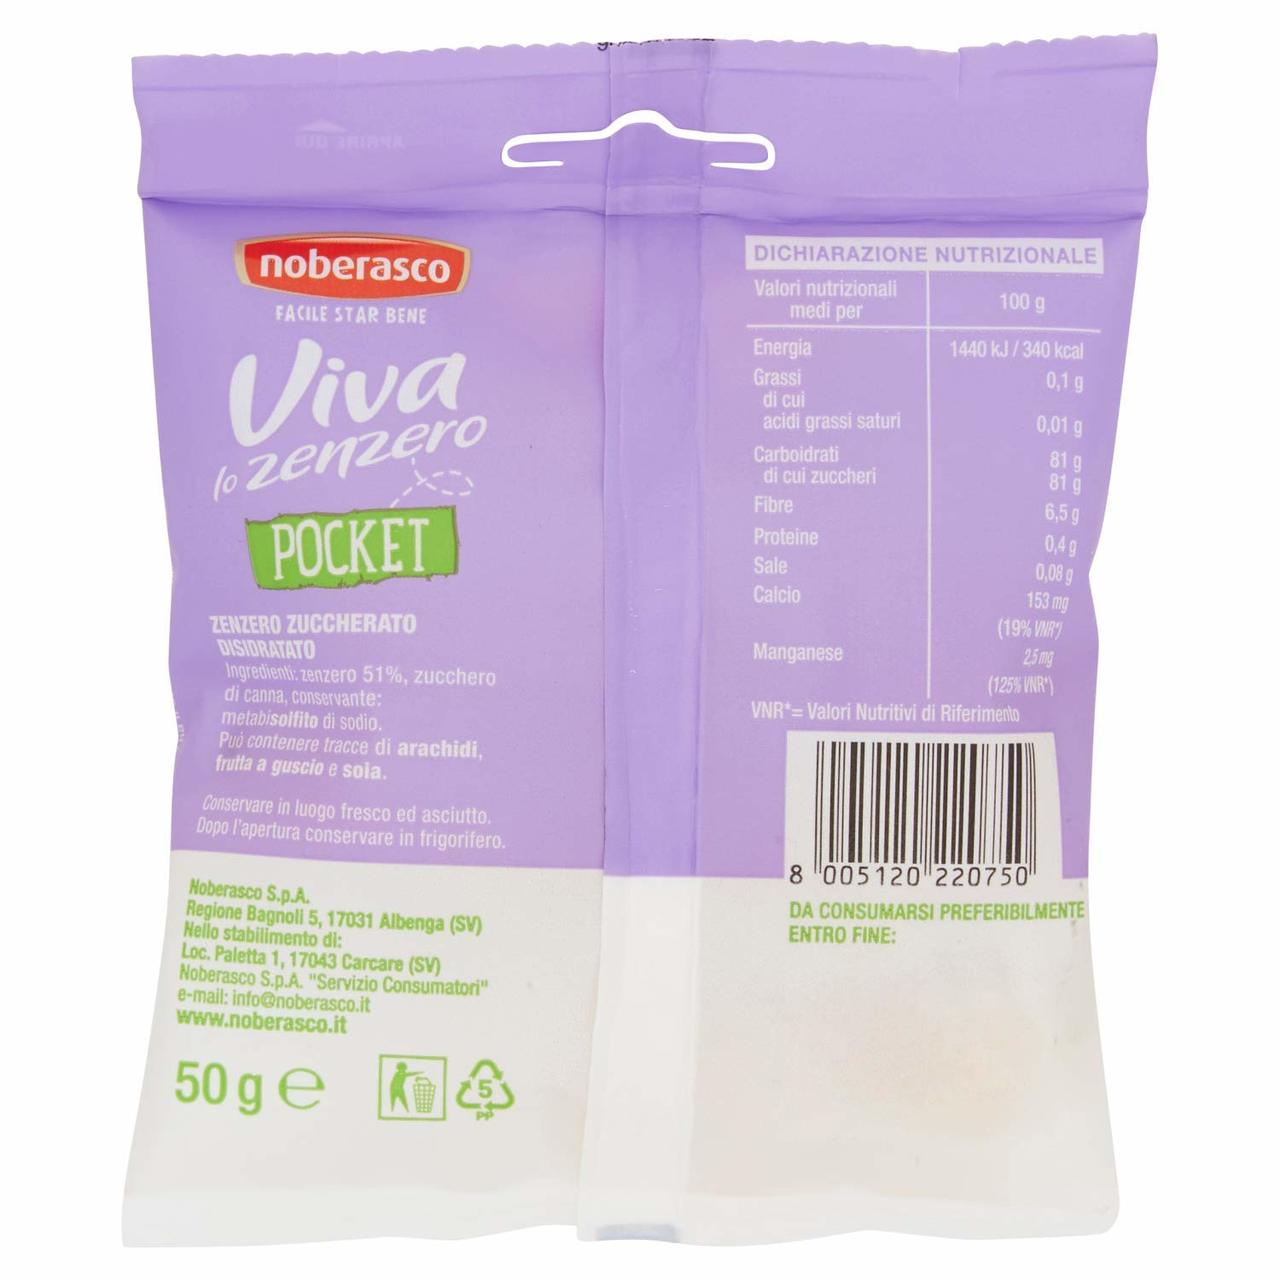 Noberasco Viva lo Zenzero - Ginger Pocket (50g) (NEW)